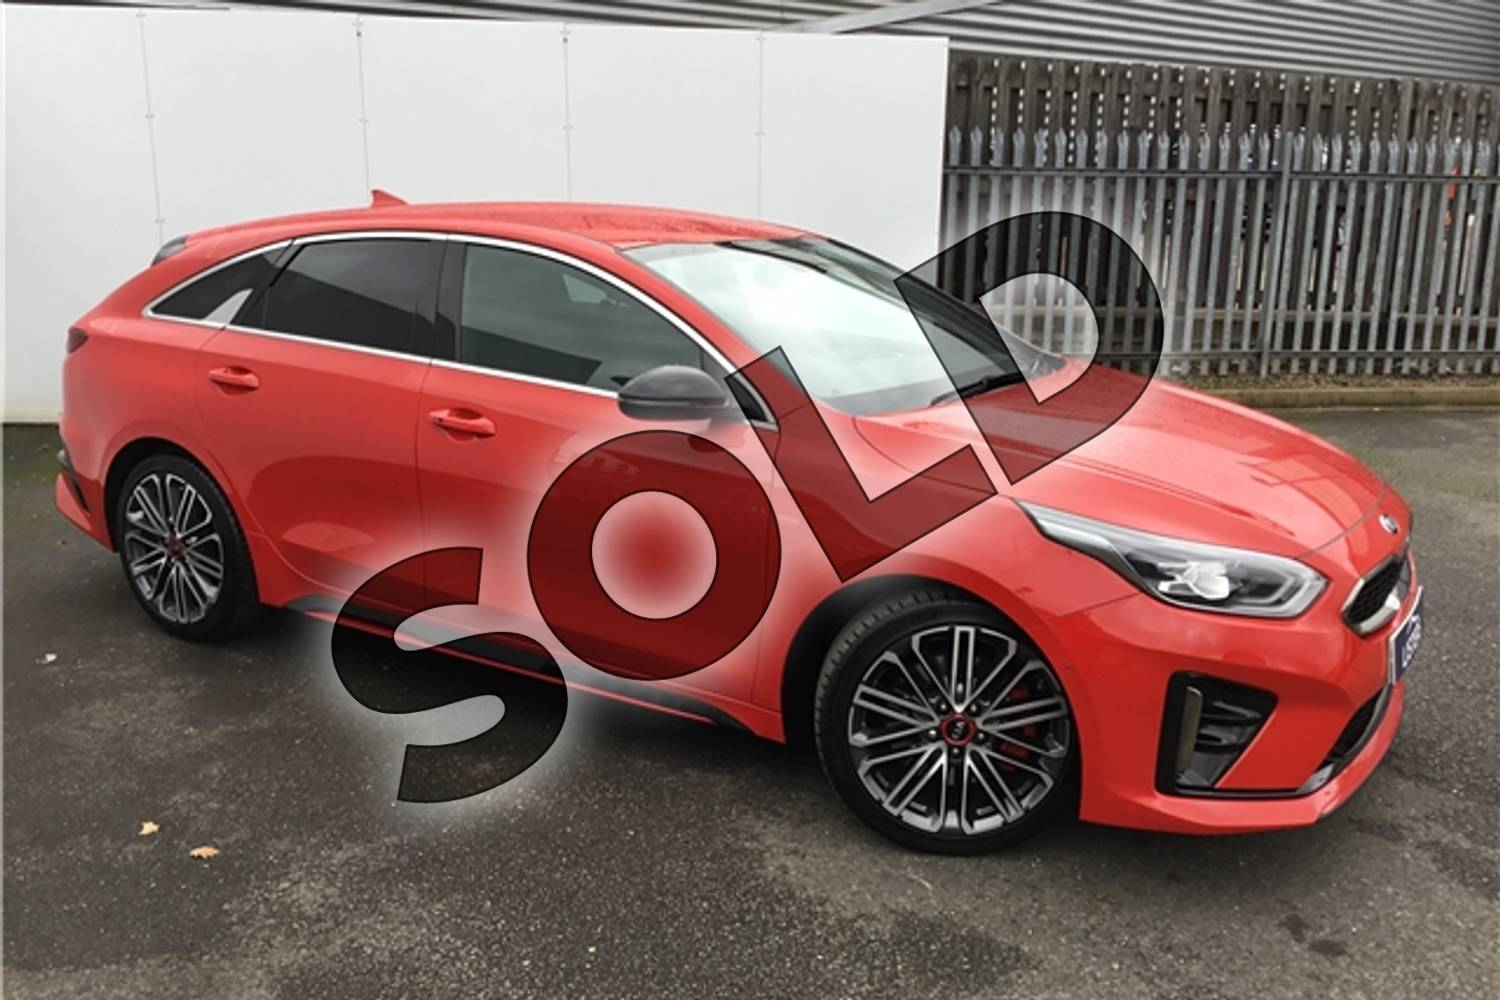 2019 Kia PRO Ceed Shooting Brake 1.6T GDi ISG GT 5dr DCT in Solid - Track red at Listers U Solihull